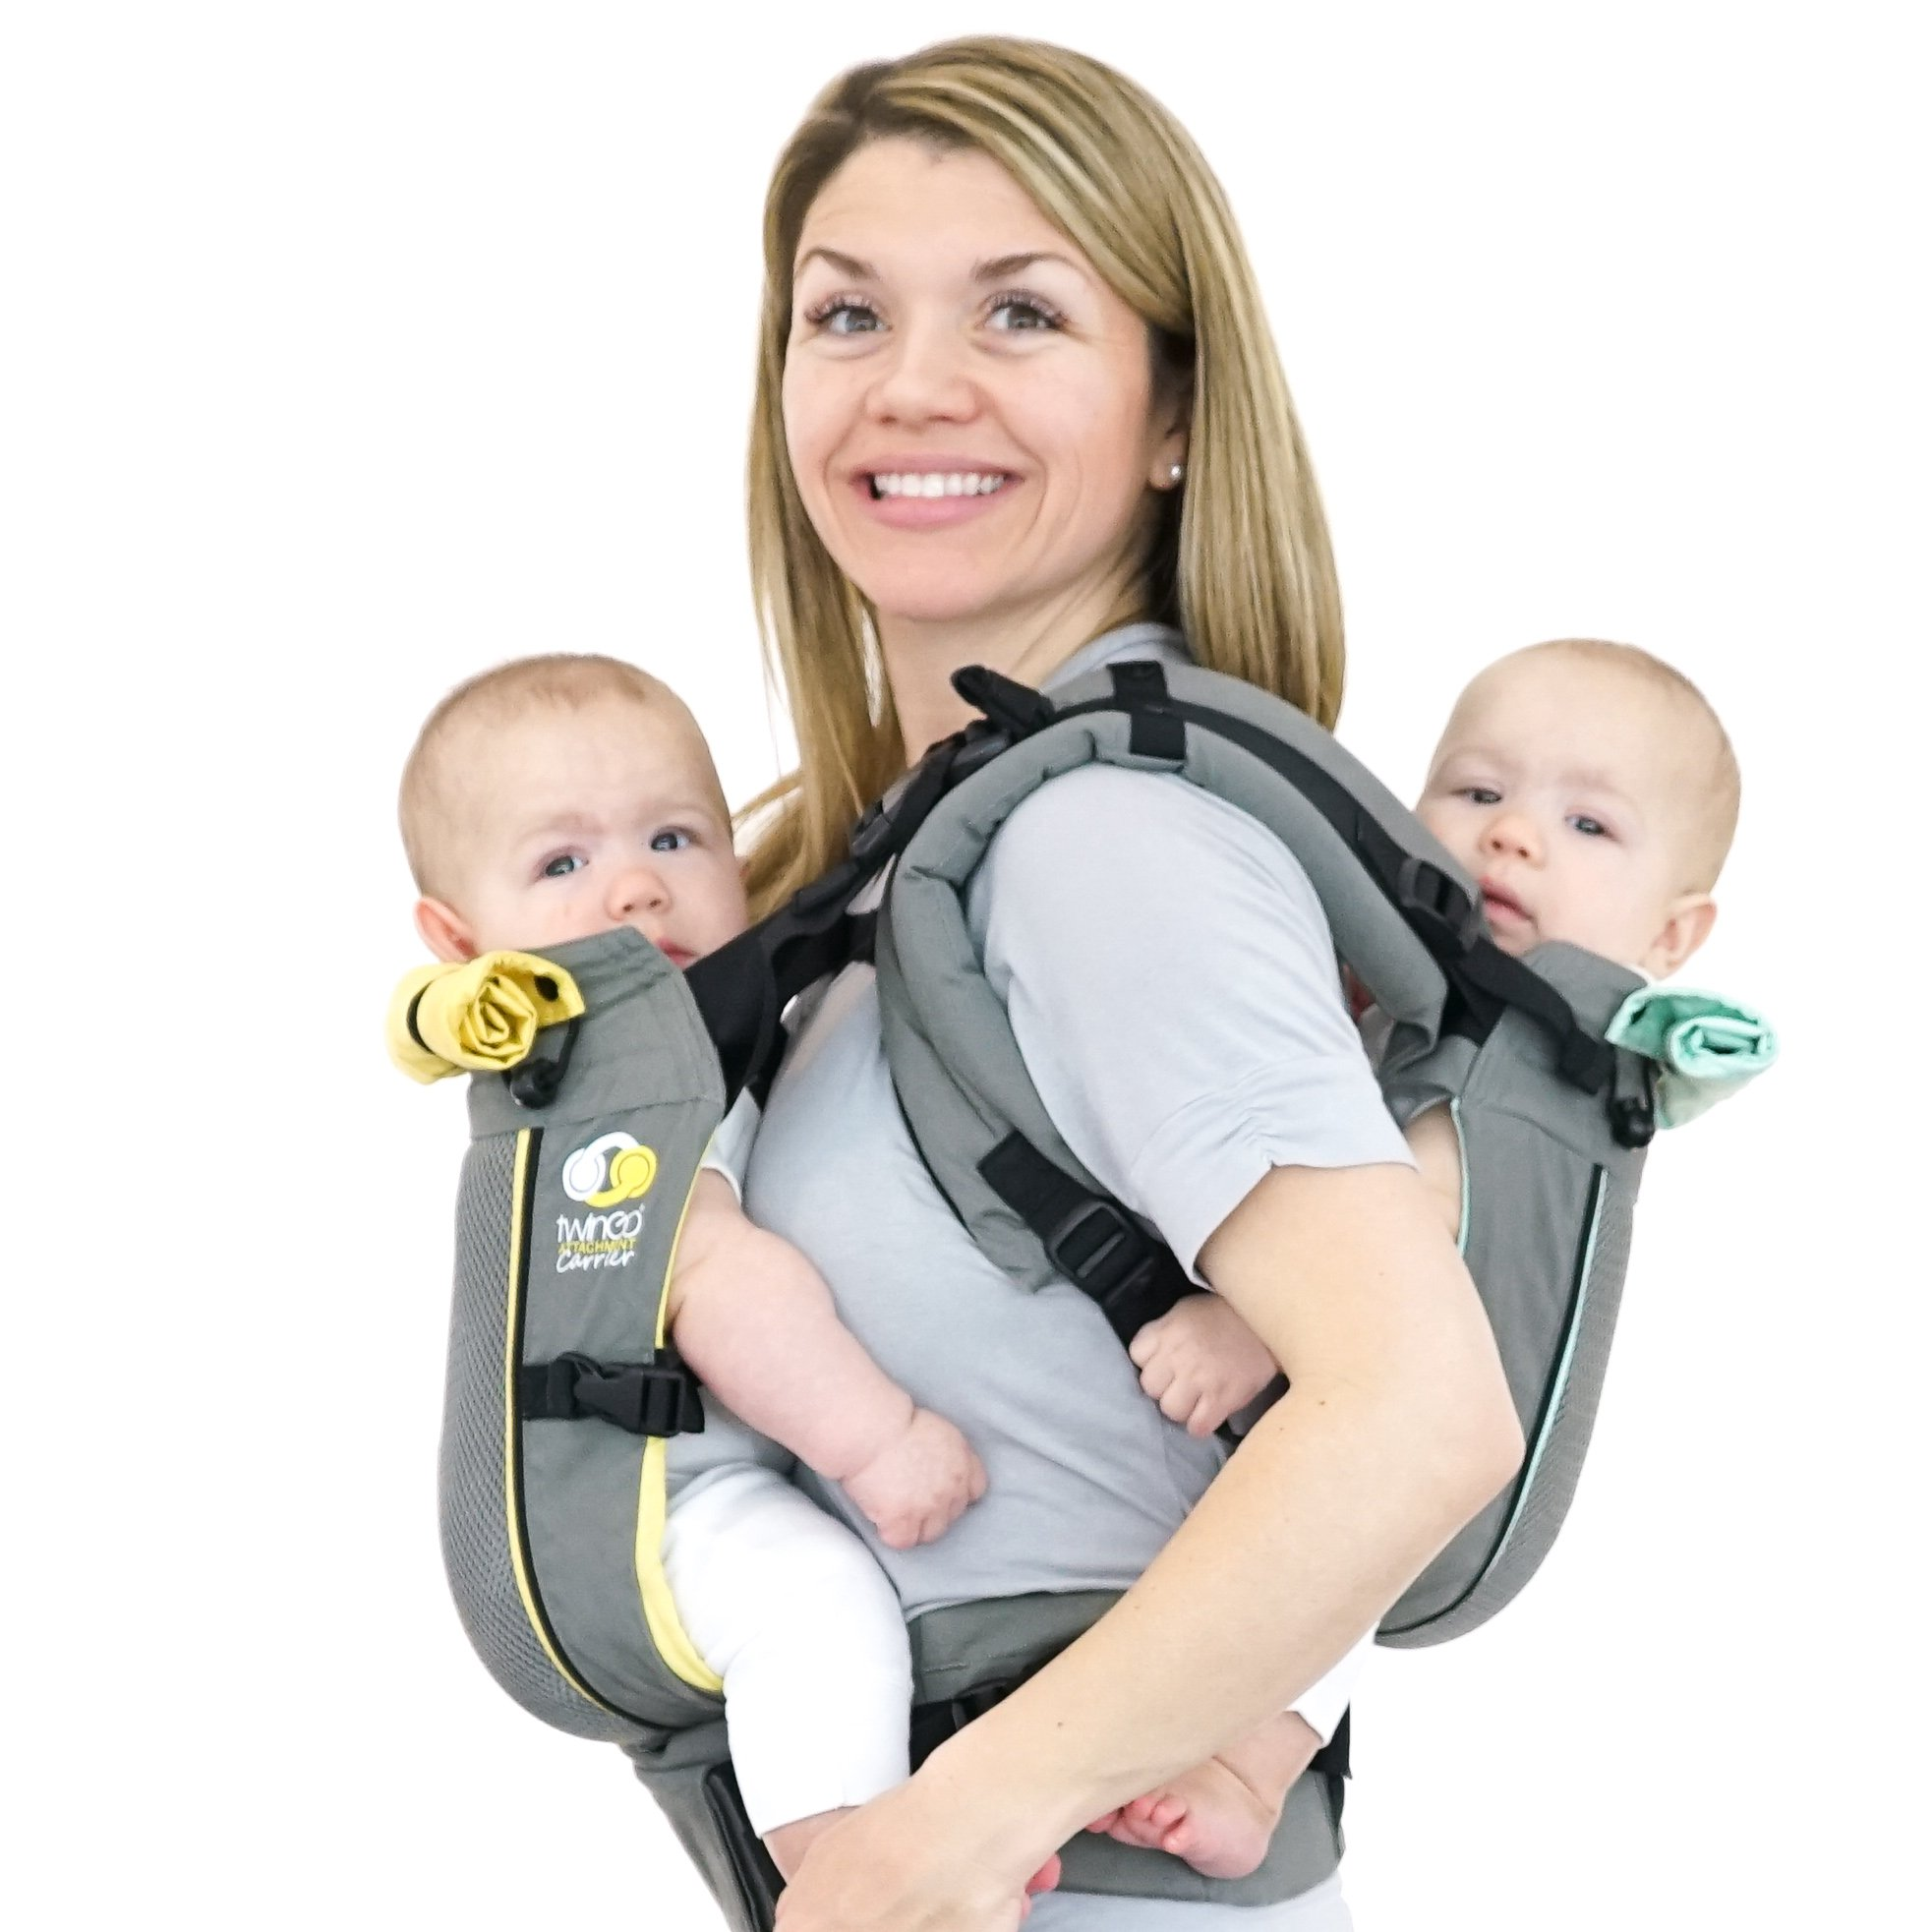 TwinGo Carrier - Air Model - Cool Grey - Great for All Seasons - Breathable Mesh - Fully Adjustable Tandem or 2 Single Baby Carrier for Men, Woman, Twins and Babies 10-45 lbs